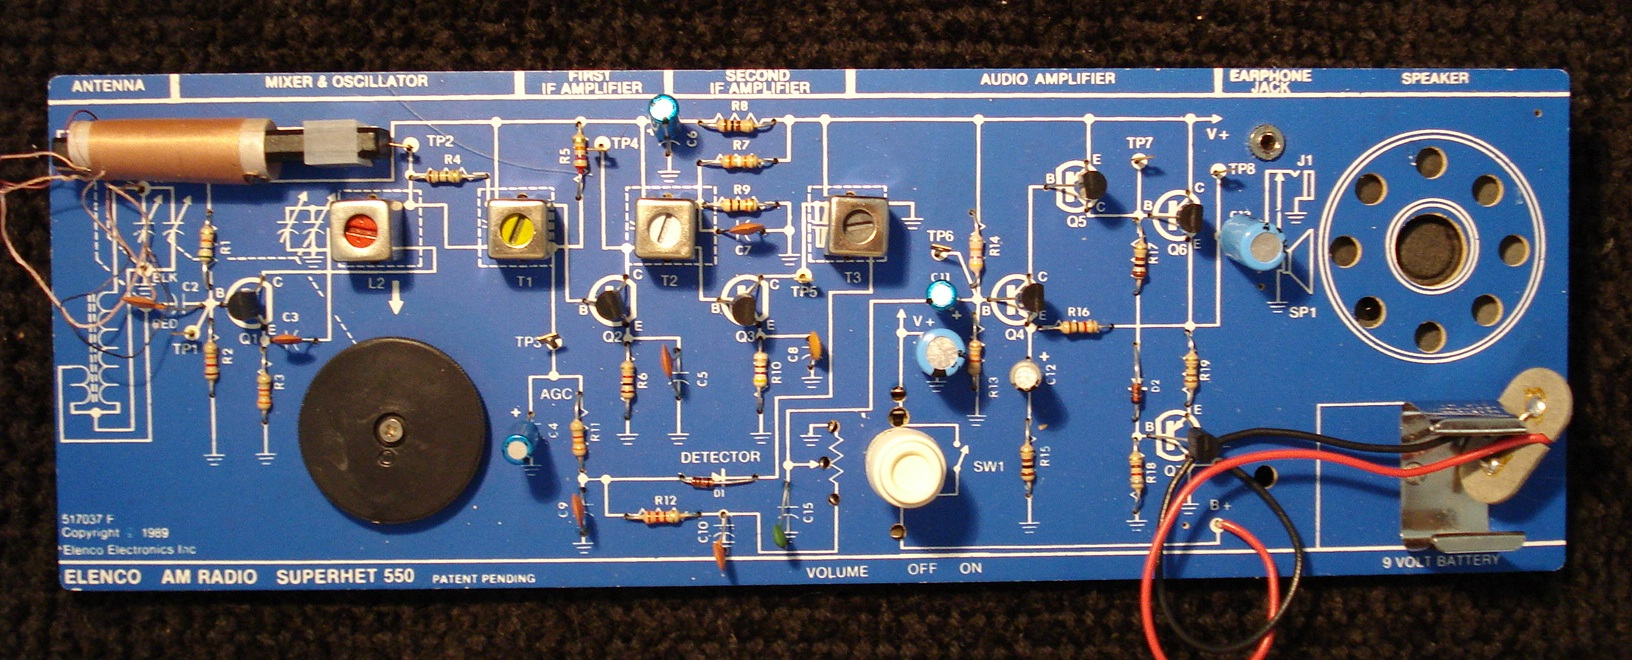 Electronic schematic in addition Electronic schematic together with Radio besides 100w Car Subwoofer  lifier moreover Electronic schematic. on audio frequency generator kit